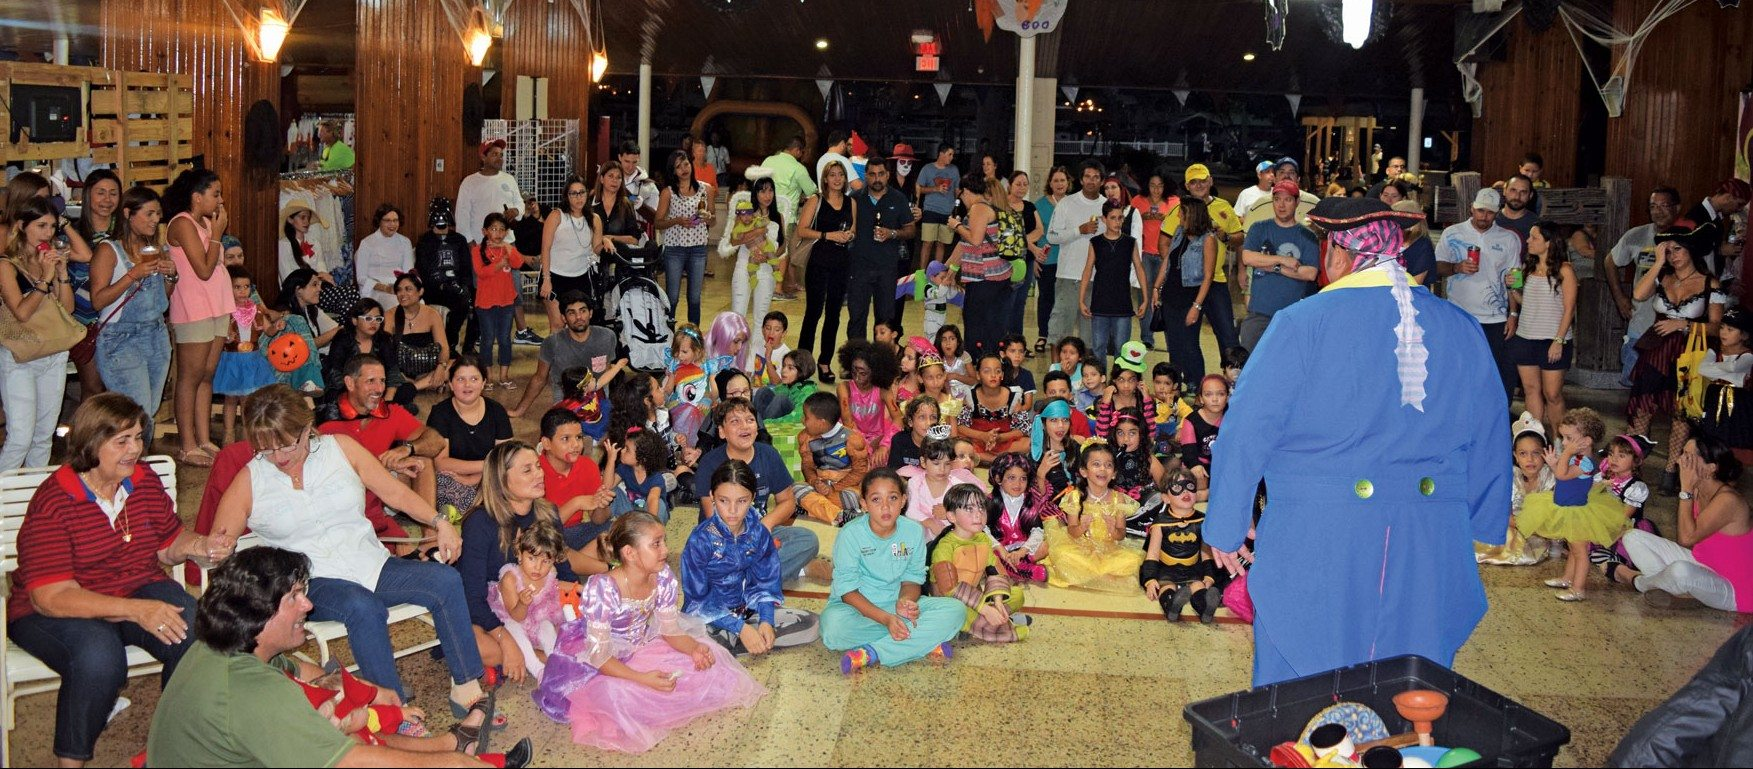 The Discover the Caribbean Series featured a Halloween Party for the kids. Photo by Maria Fernanda Rodriguez